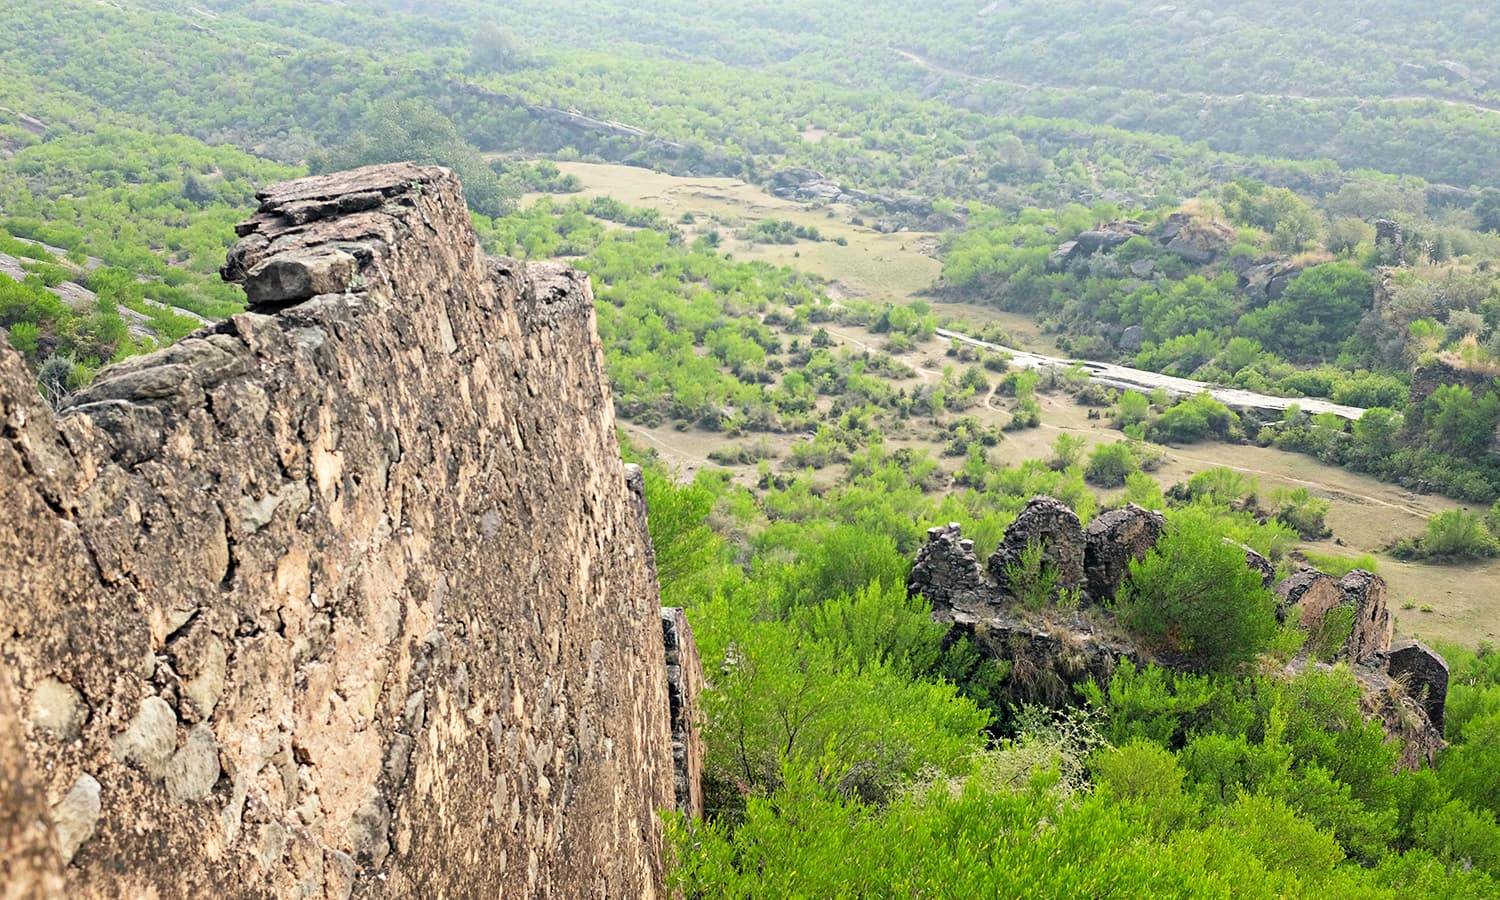 A view of the wall on the Eastern side.